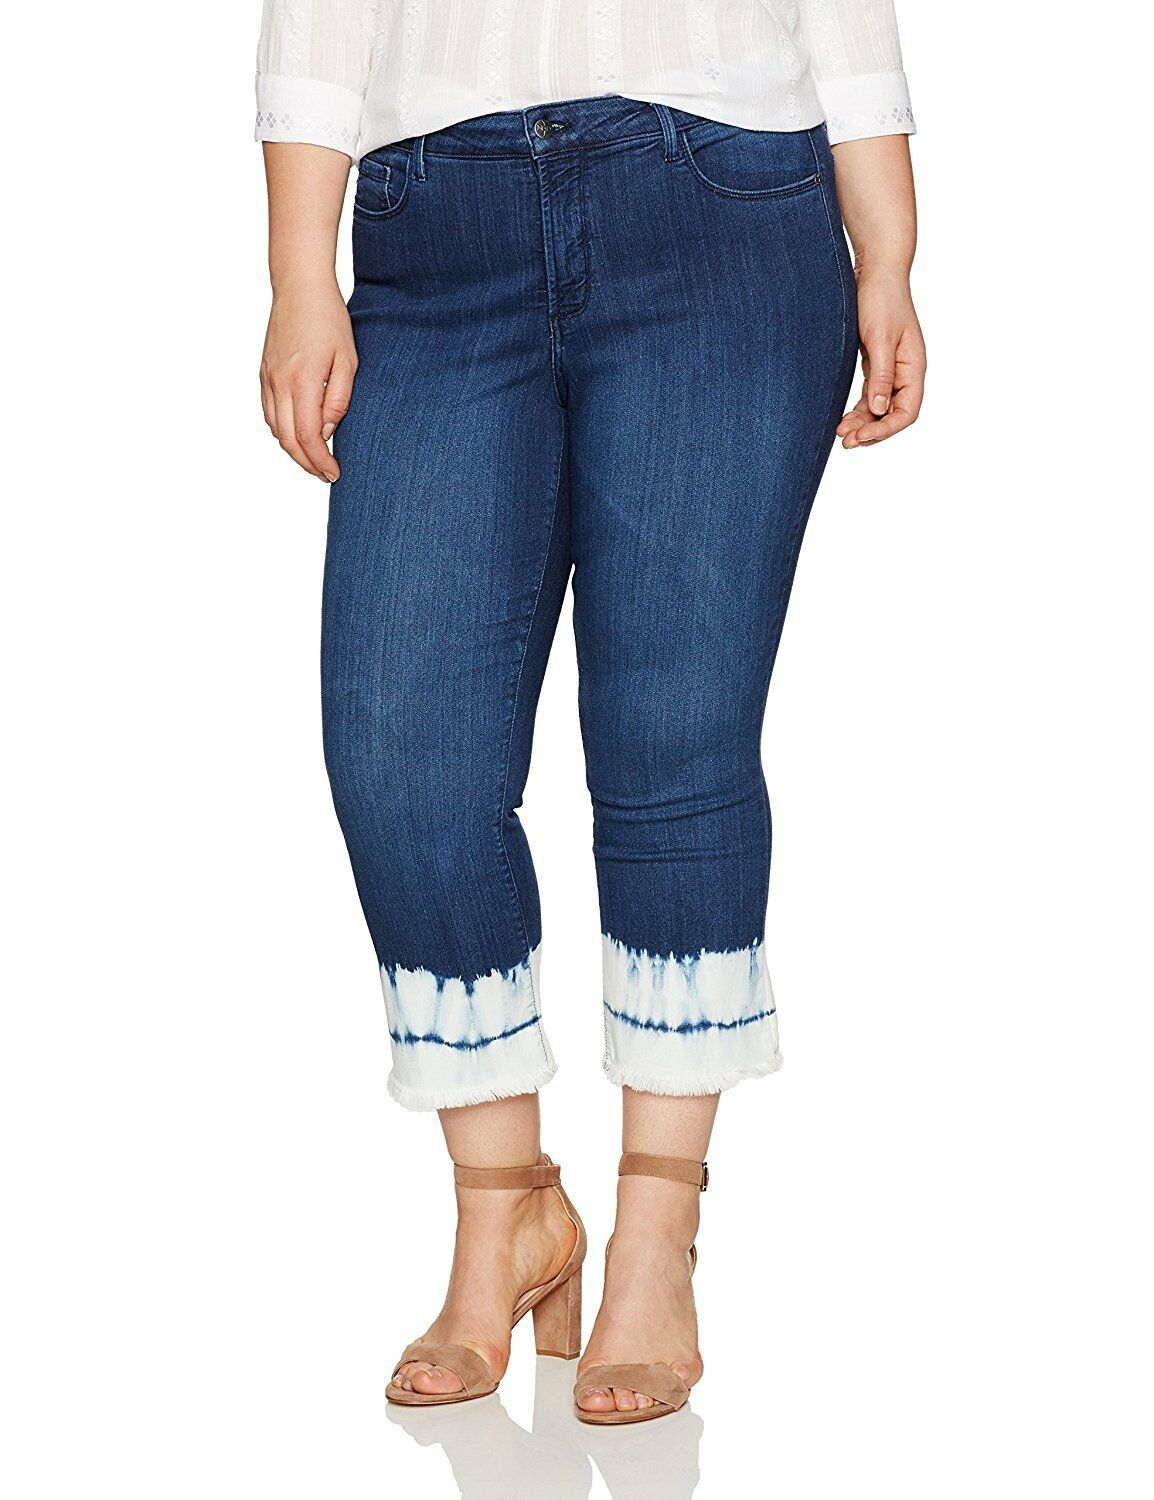 NYDJ Womens Collection Plus SZ Billie Ankle Bootcut Jeans in Sure